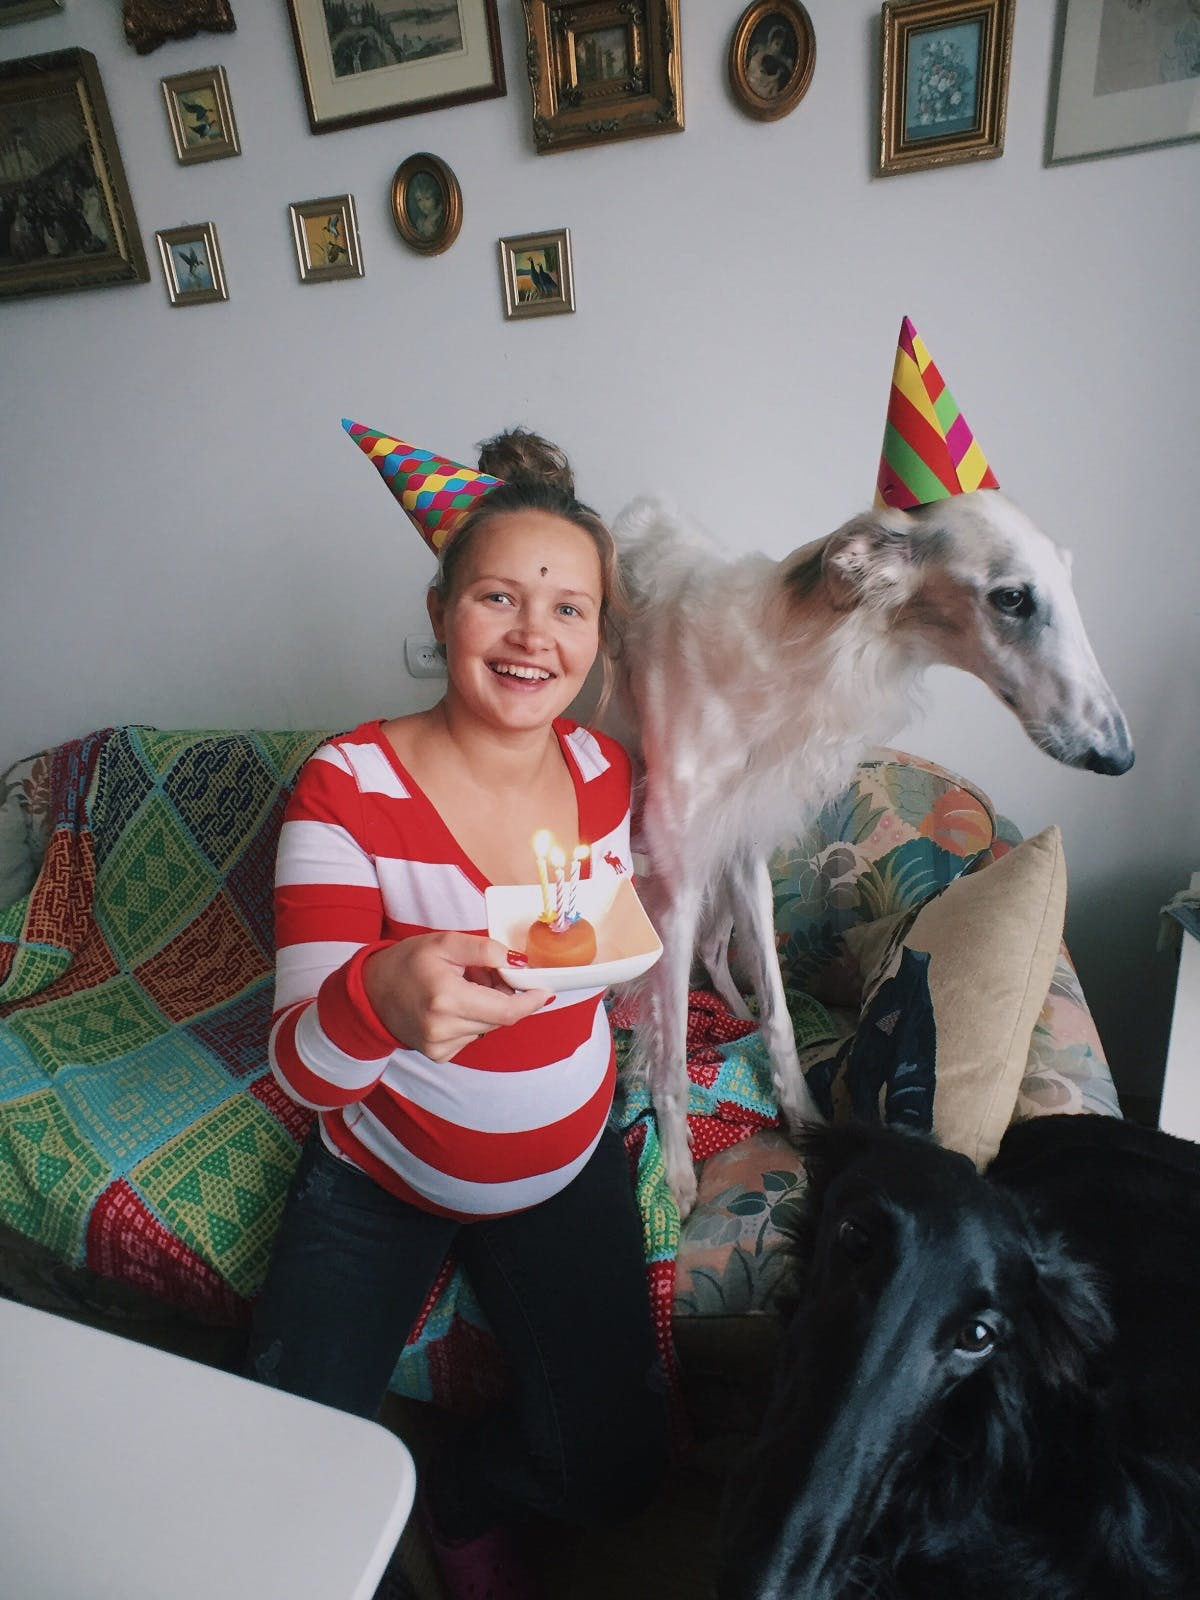 A girl and her dog wearing birthday hats on the couch